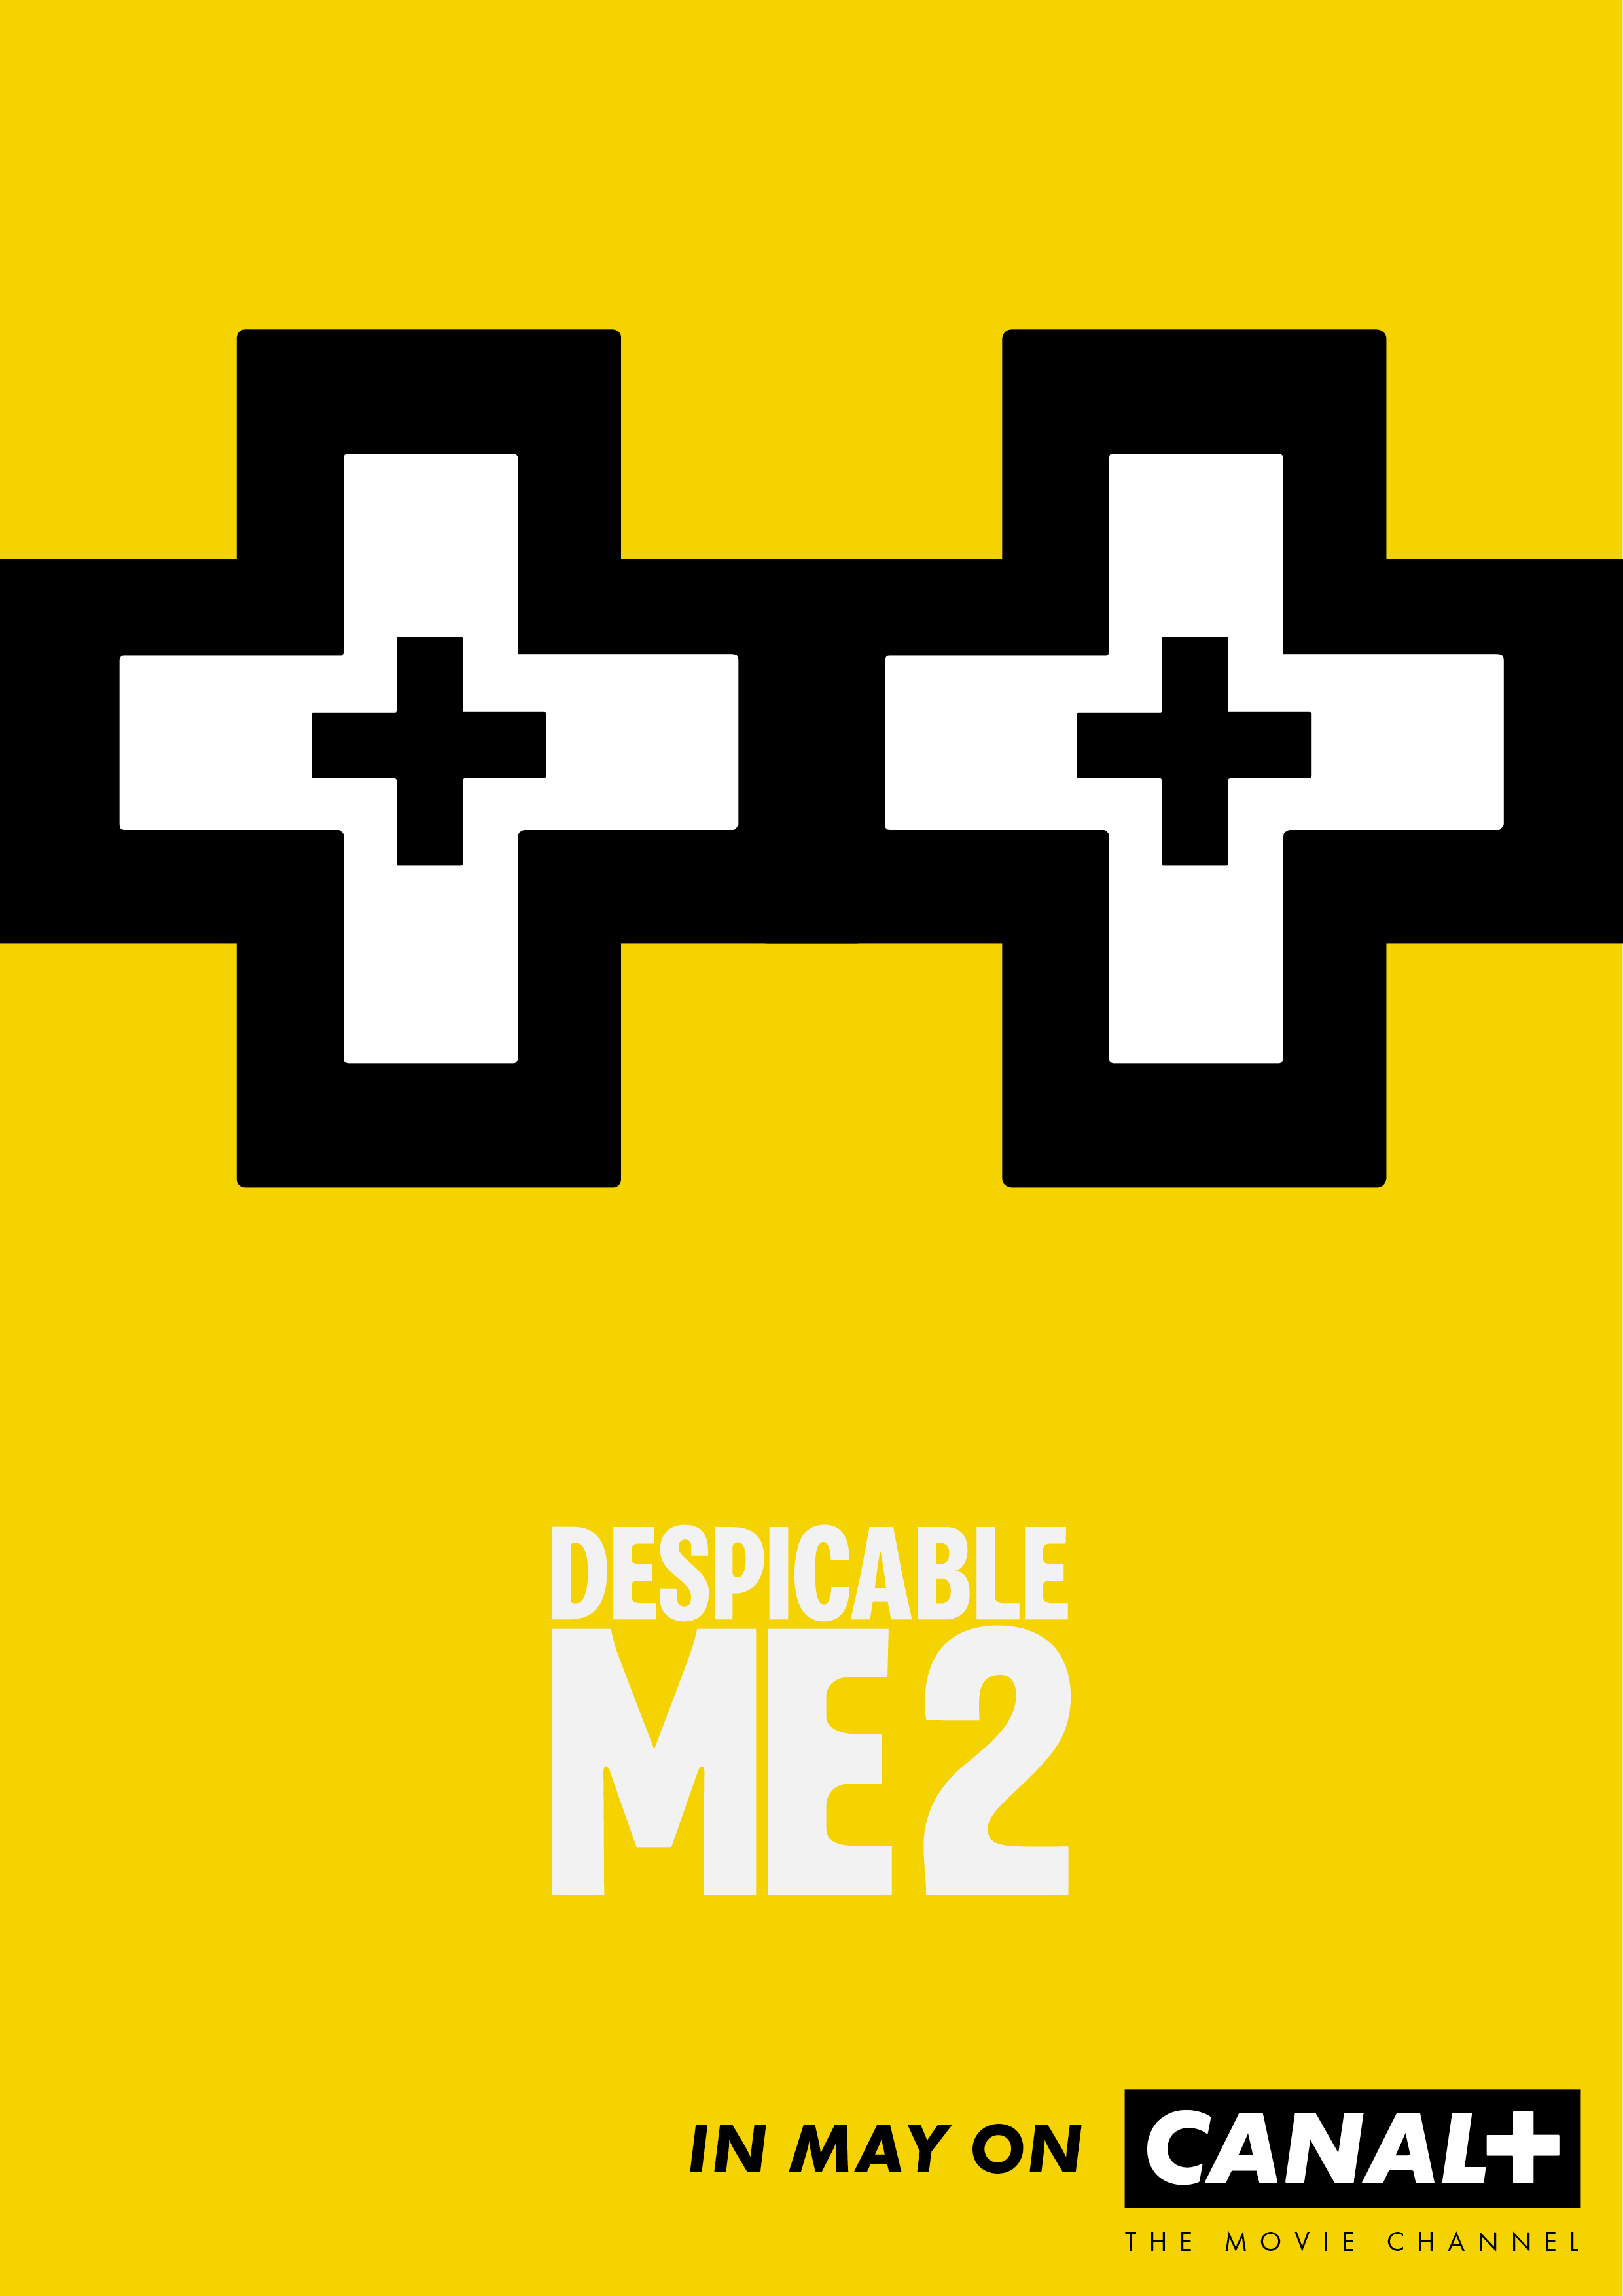 Outdoor Ad Canal Despicable Me 2